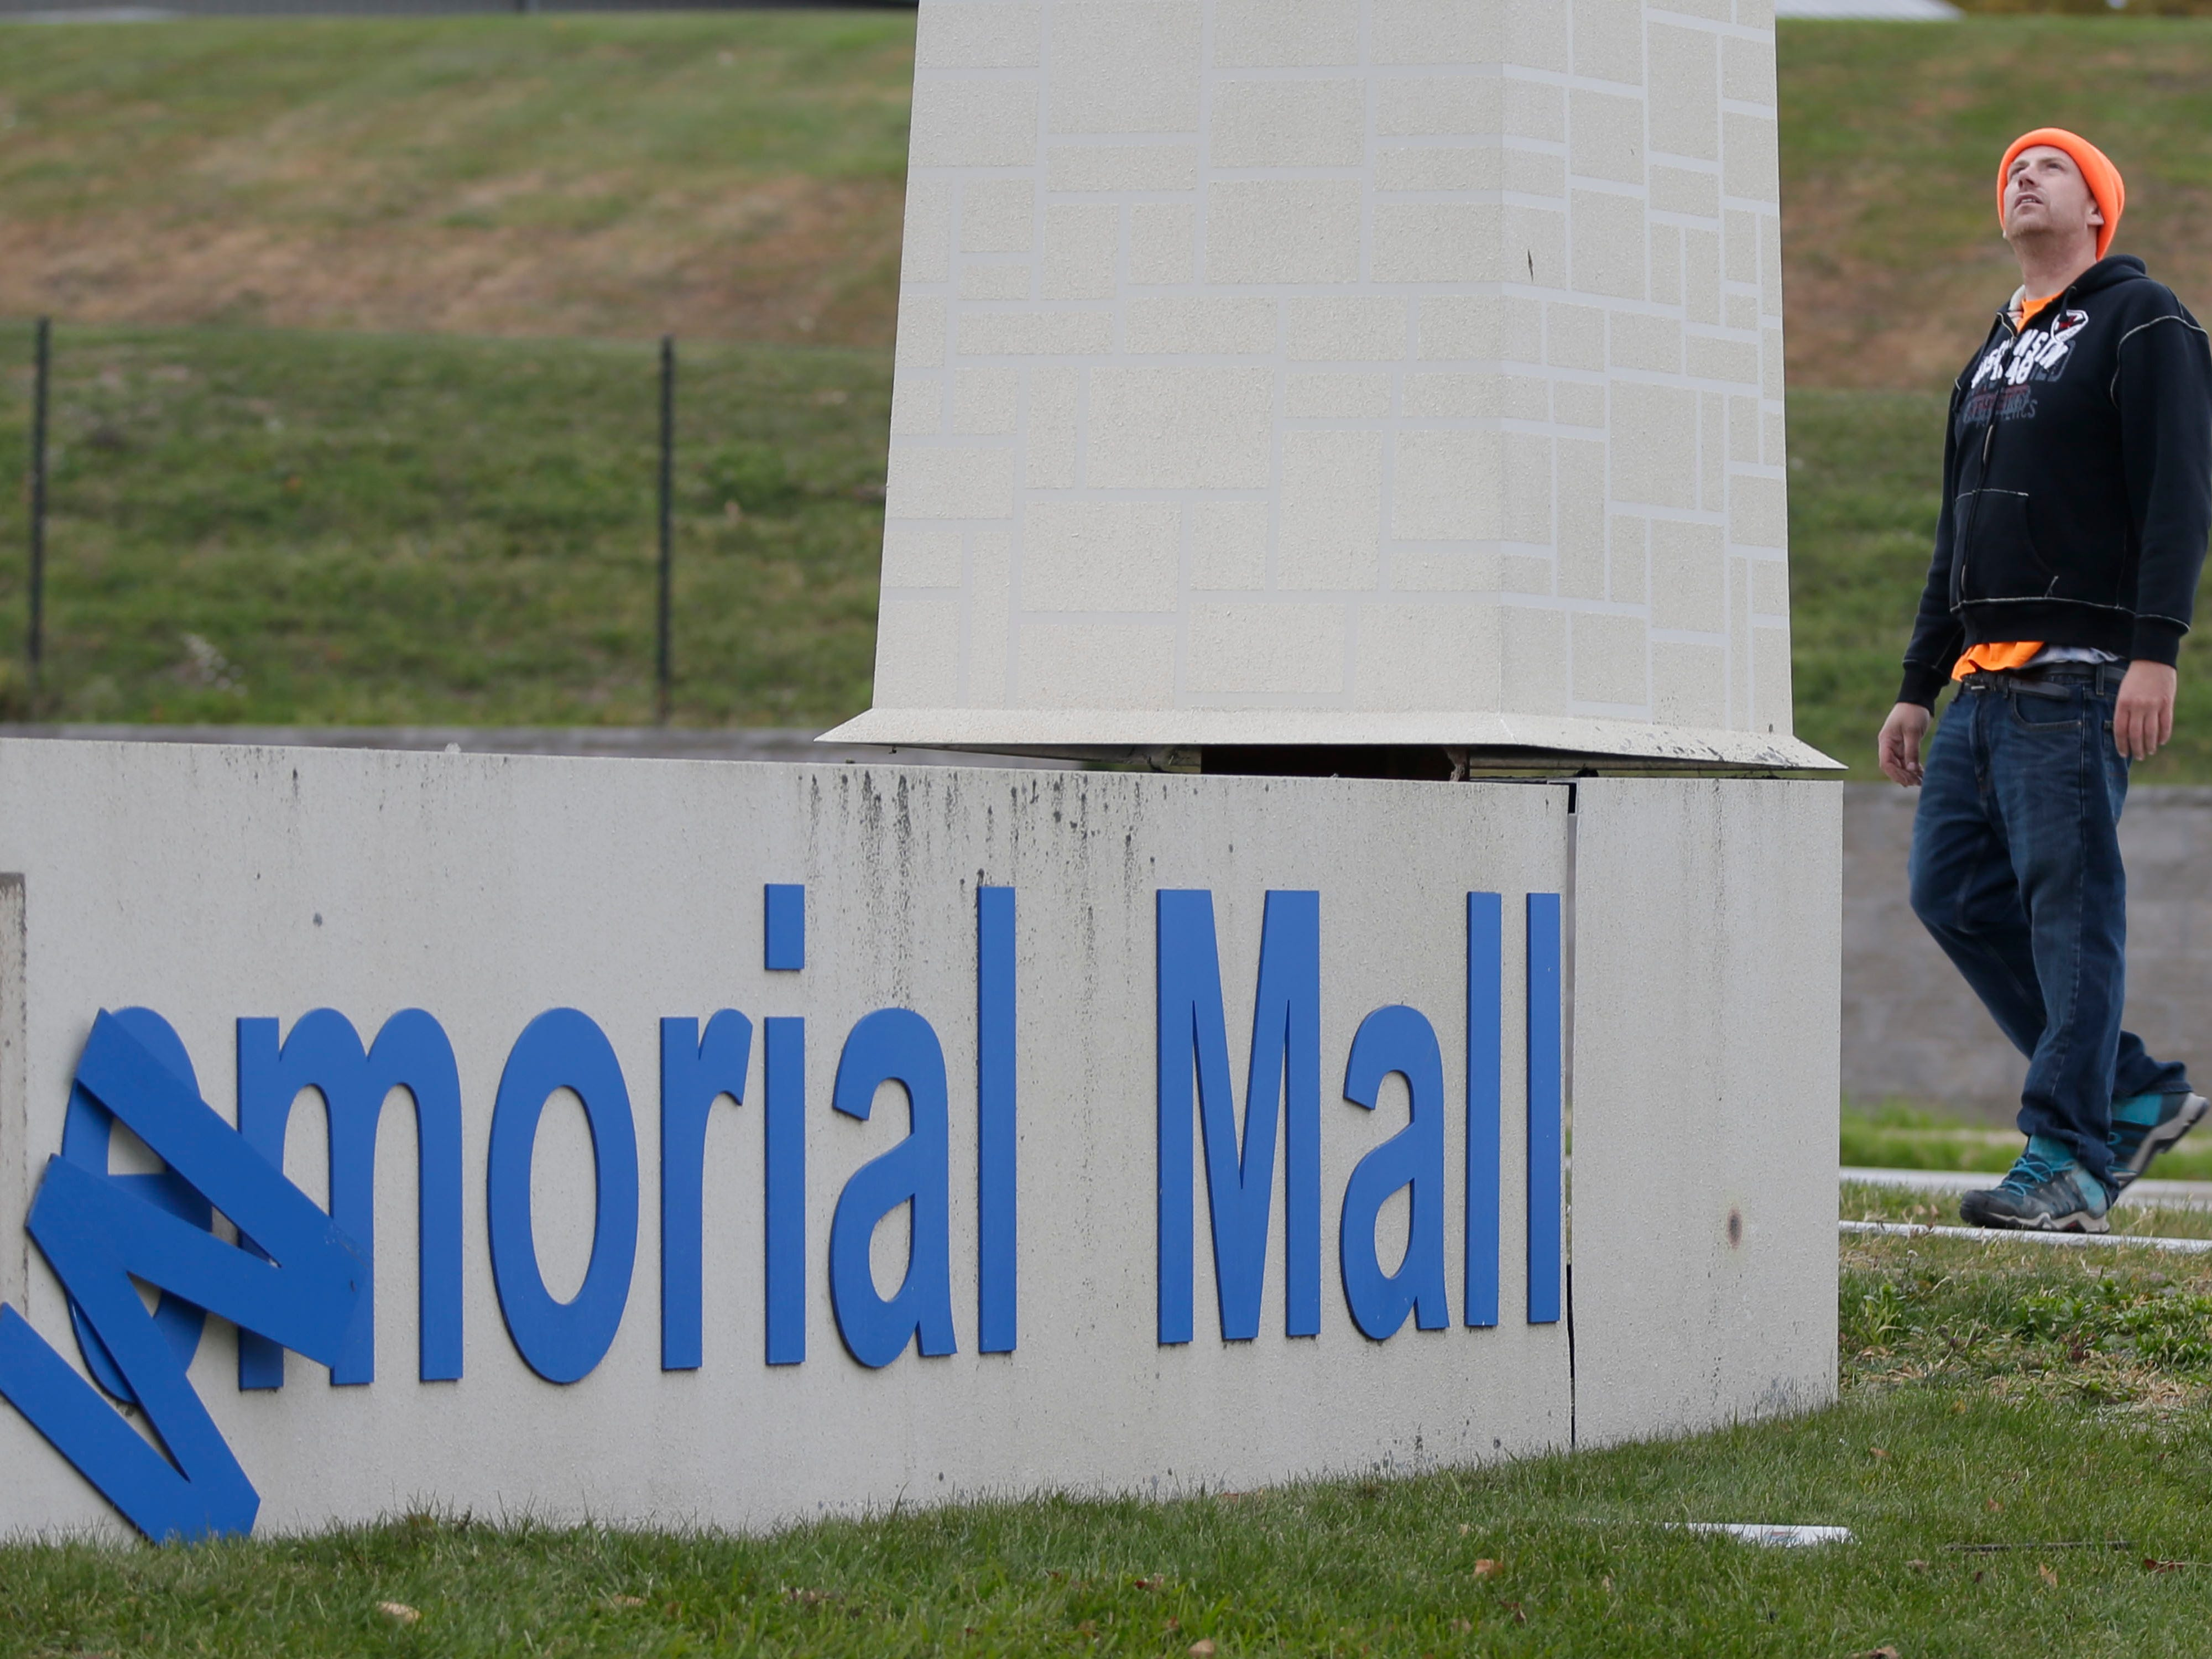 RLO Sign site supervisor Craig Ostermann observes as the old Sheboygan Memorial Mall sign is dismantled, Friday, October 26, 2018, in Sheboygan, Wis.